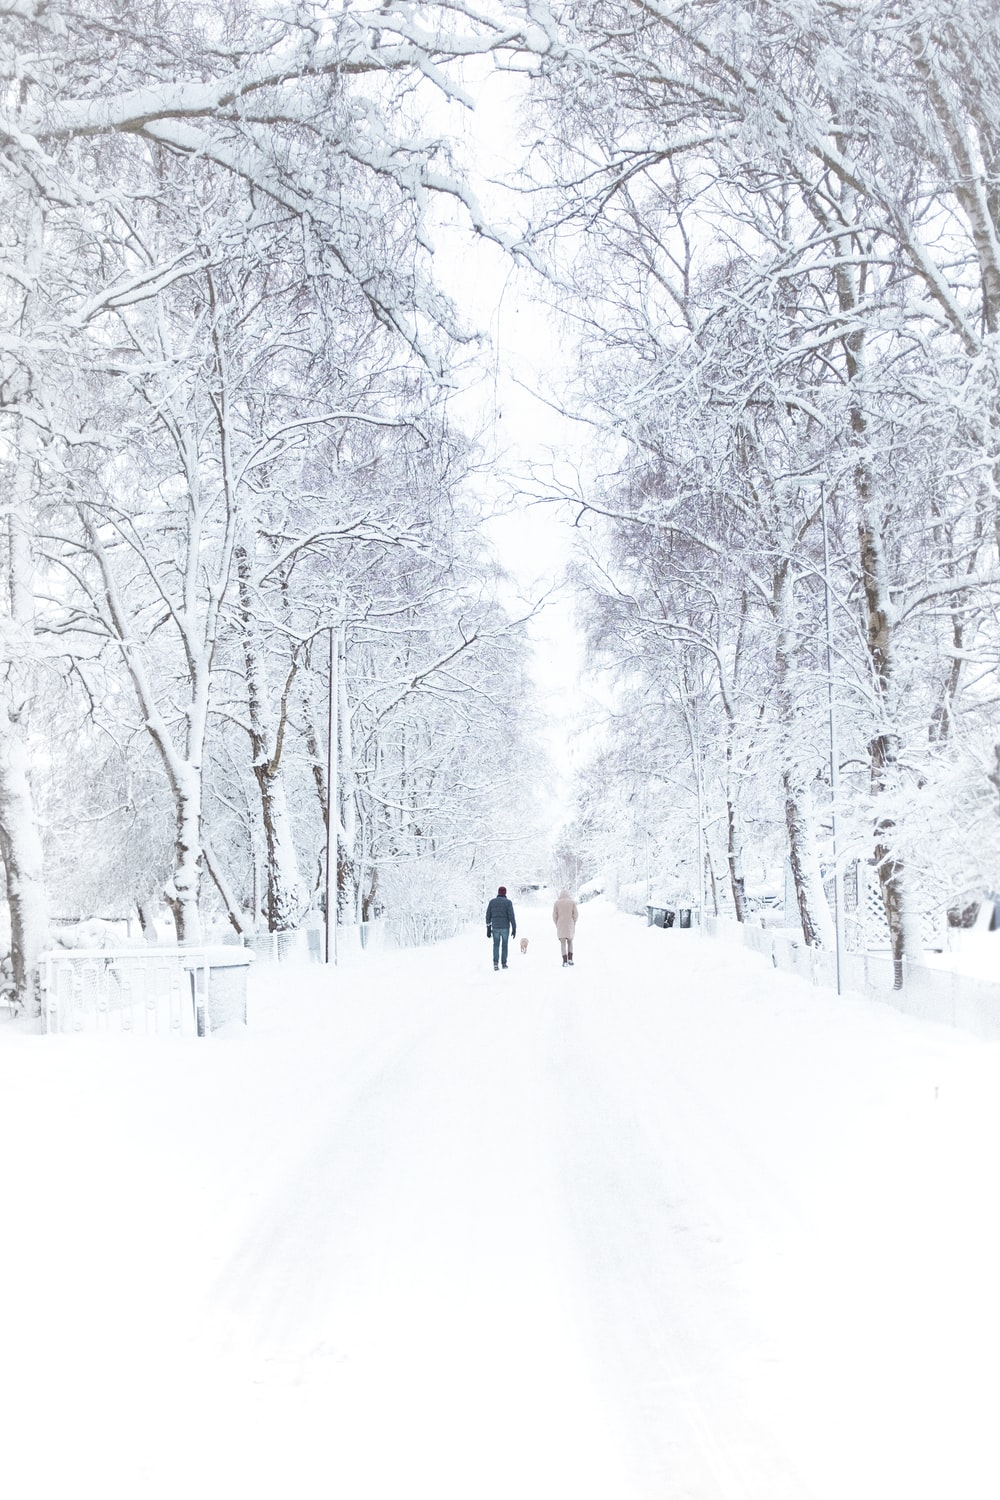 two person walking on snowy road inline of trees during daytime